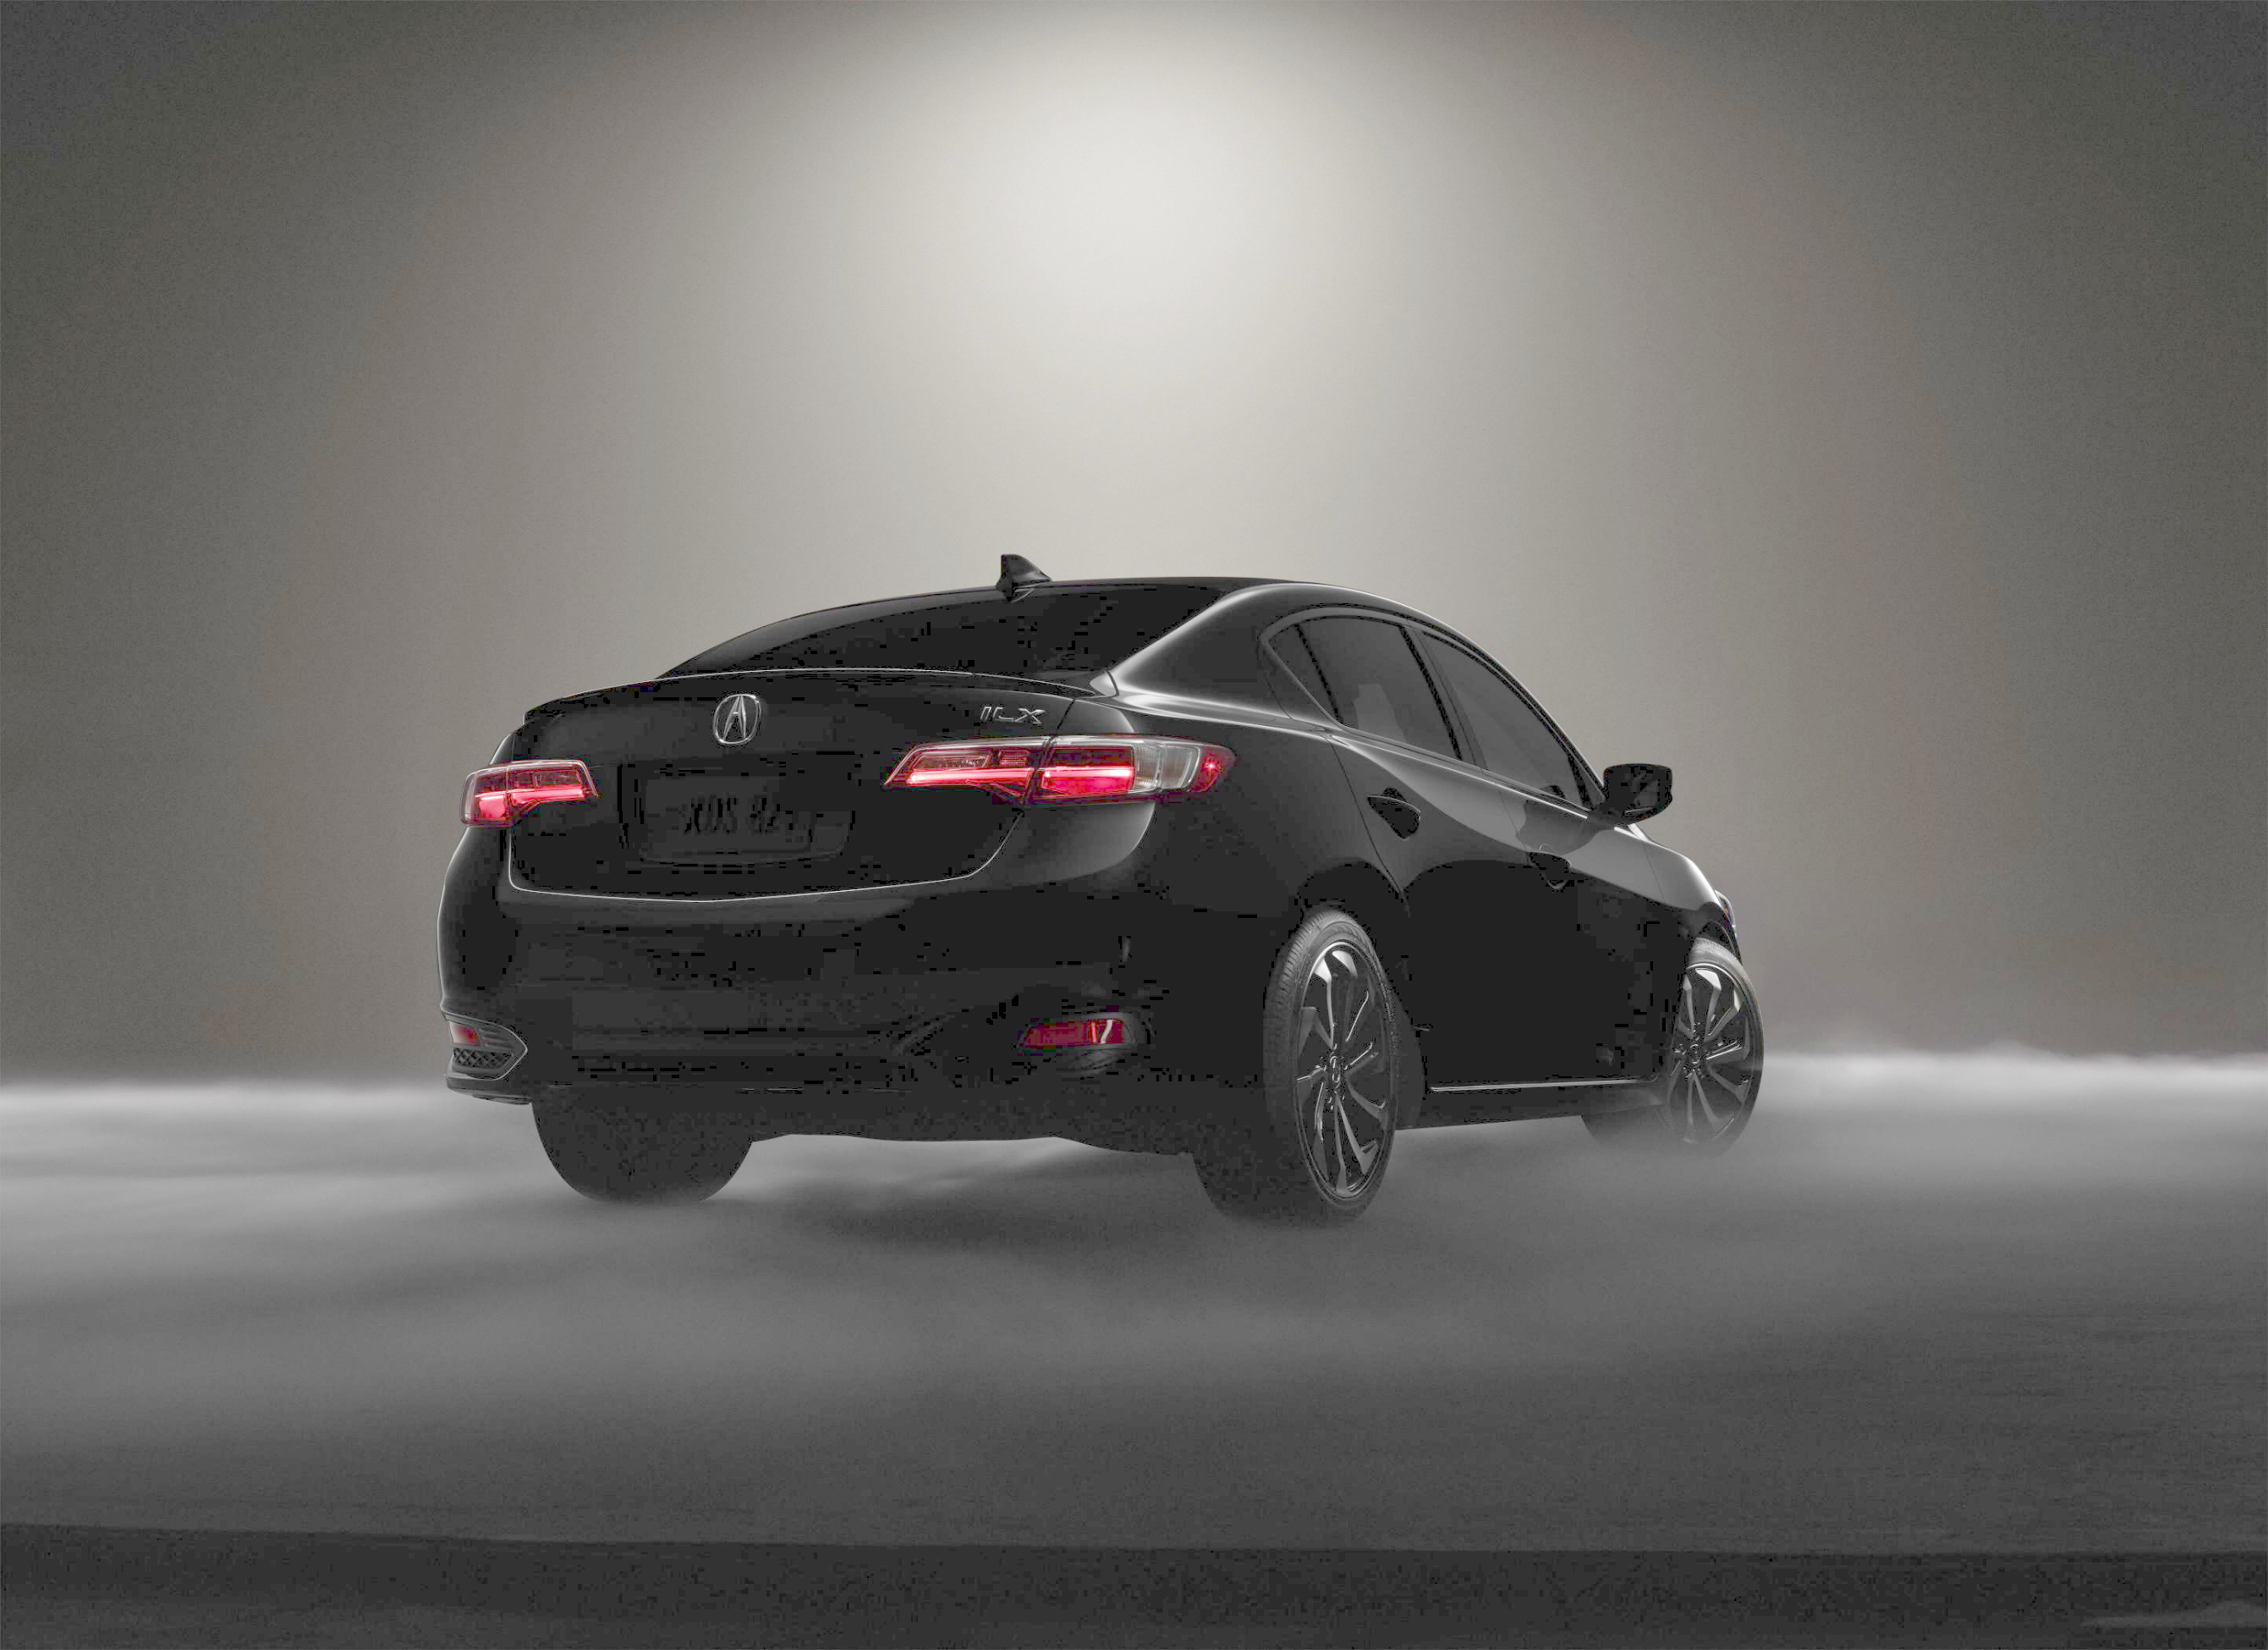 2016 Acura ILX Teased Ahead of 2014 Los Angeles Auto Show Debut - autoevolution